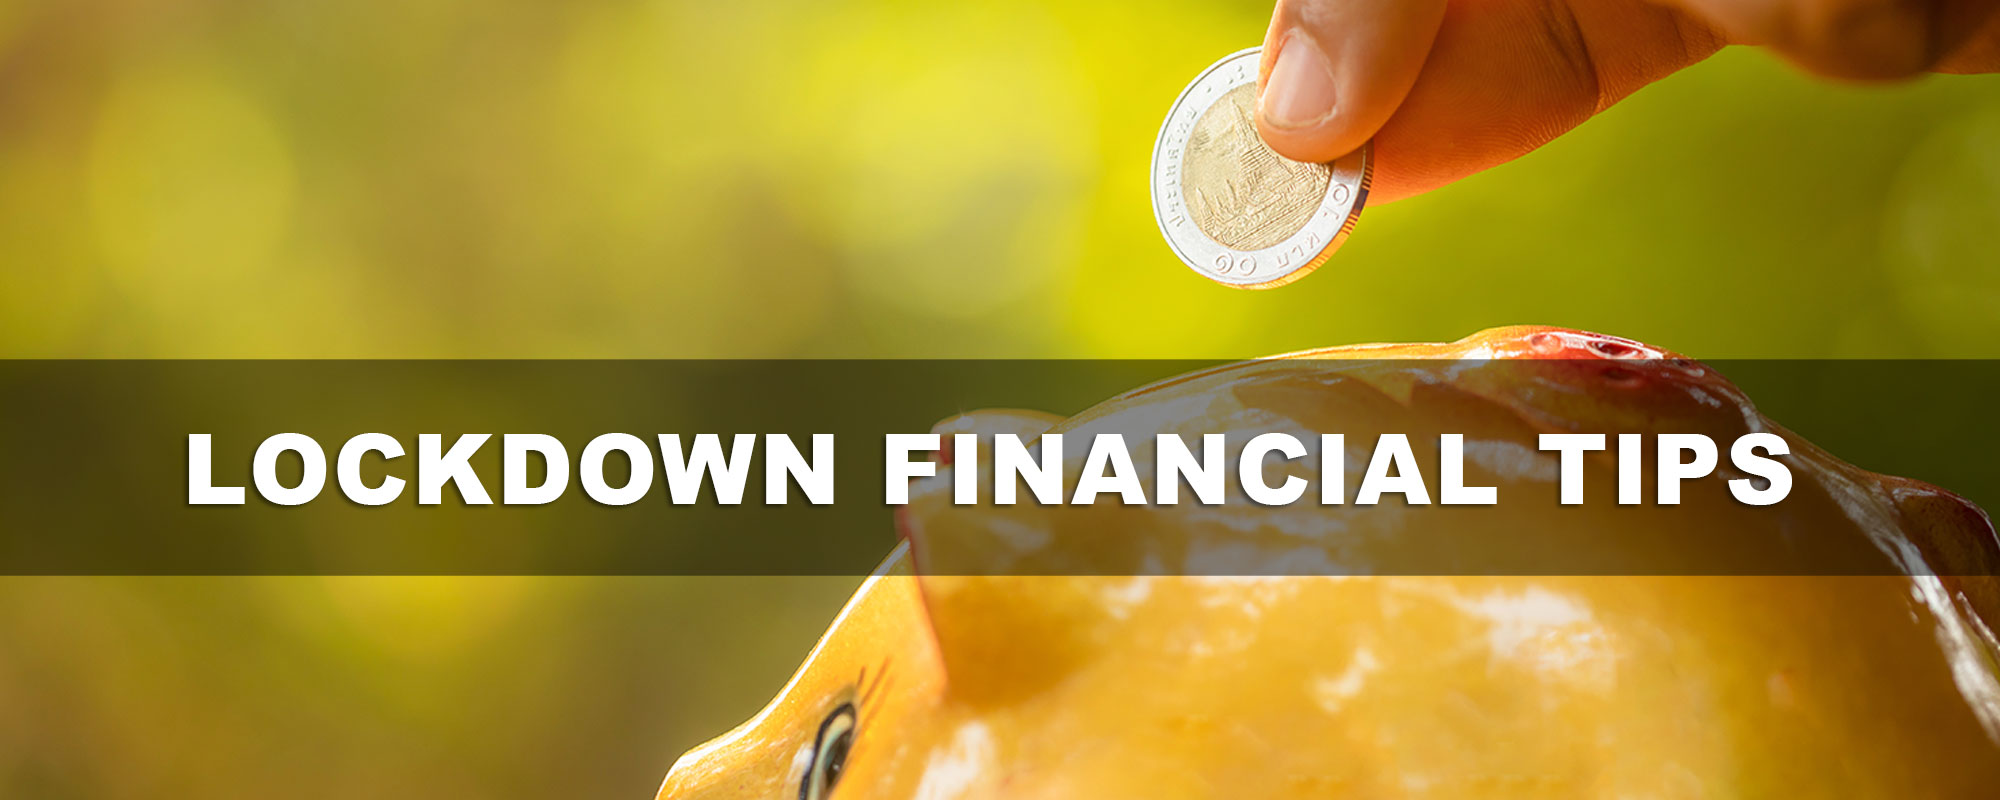 Try These Financial Tips During Lockdown